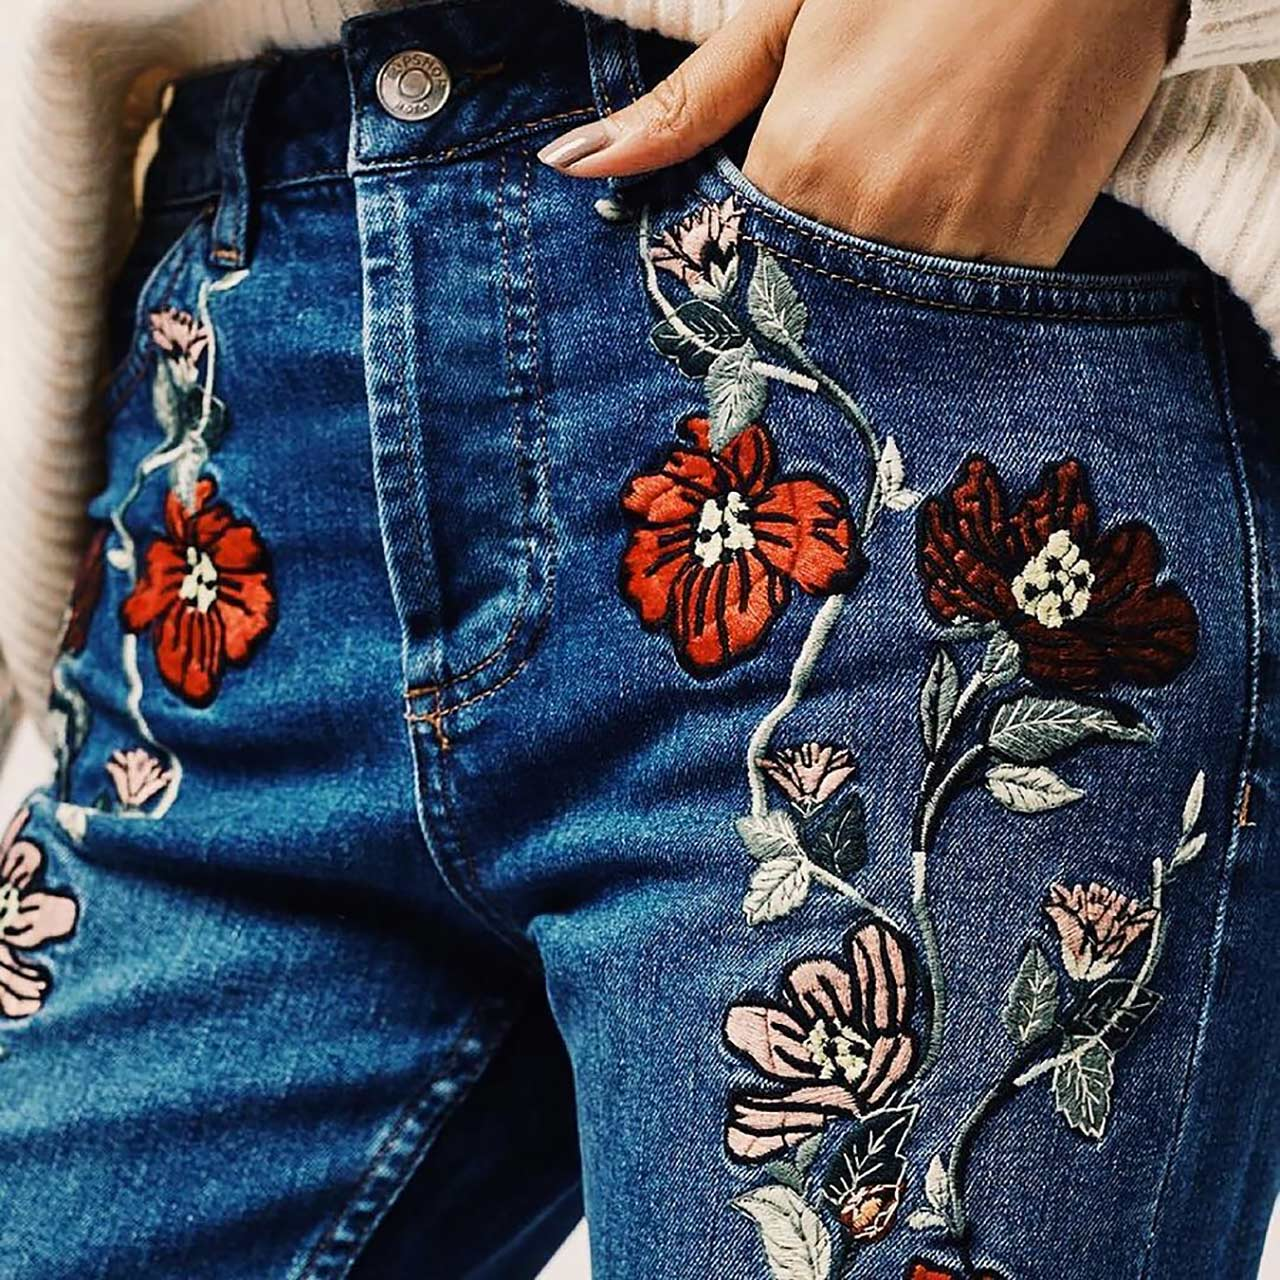 The Embroidered Denim Trend For Winter 2016 The Jeans Blog